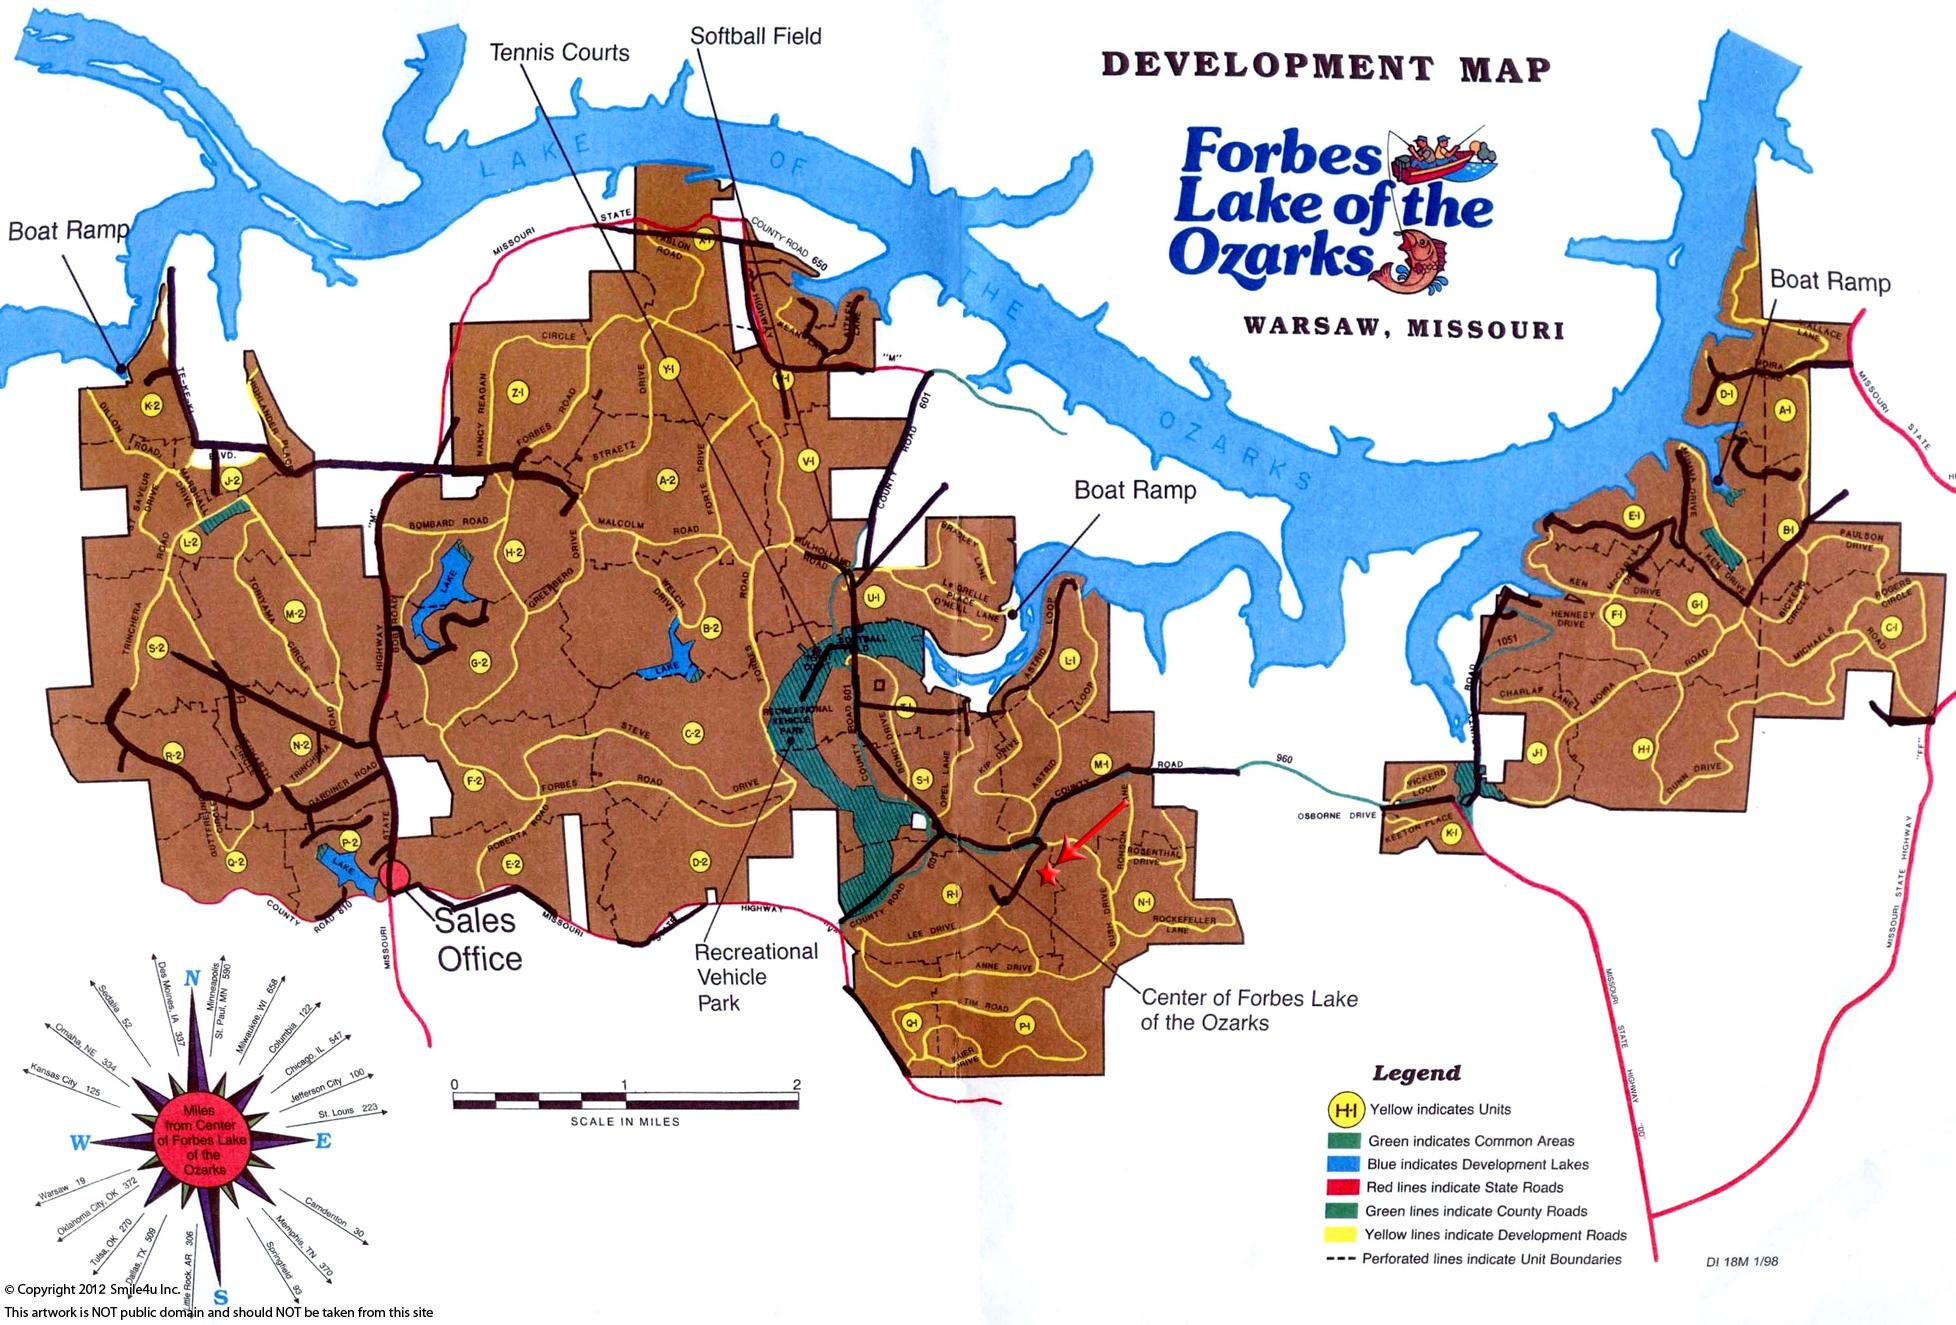 991458_watermarked_FLOZ Development Map.JPG